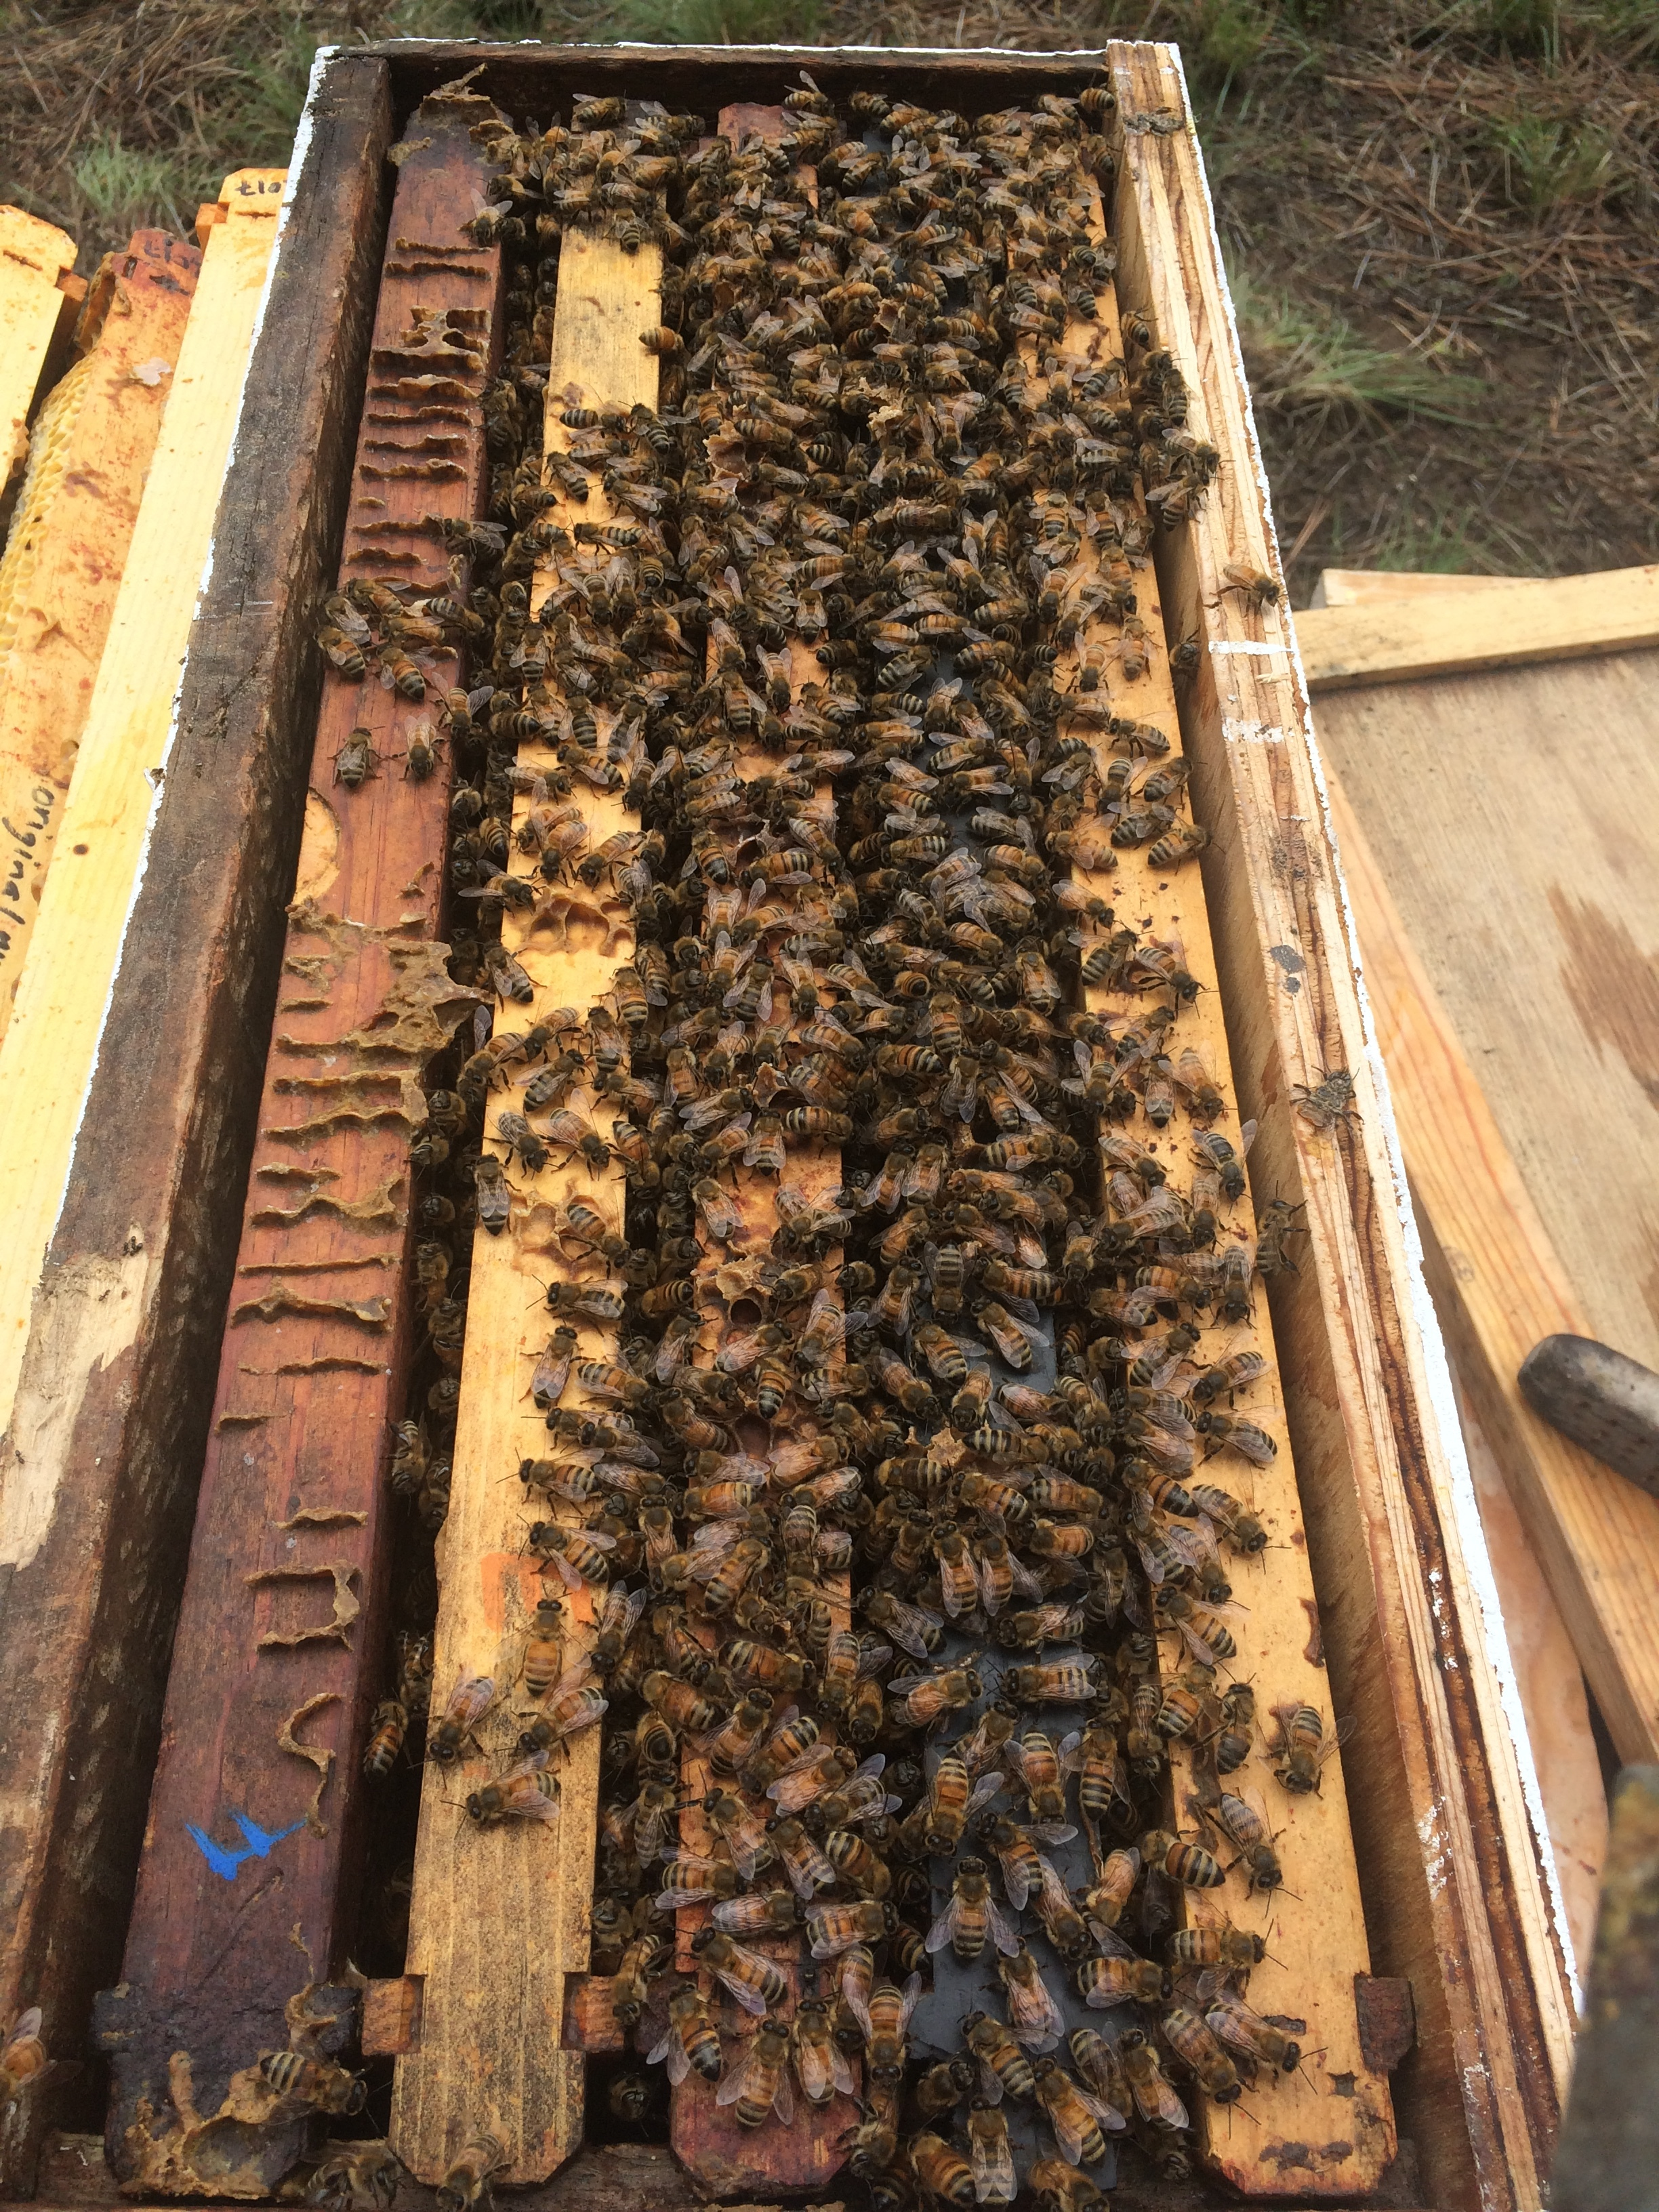 """This is a five-frame """"nucleus"""" hive - Ruby picked up five of these small hives from a local apiary that specializes in """"survivor bees"""" that are locally adapted to Southern Oregon."""